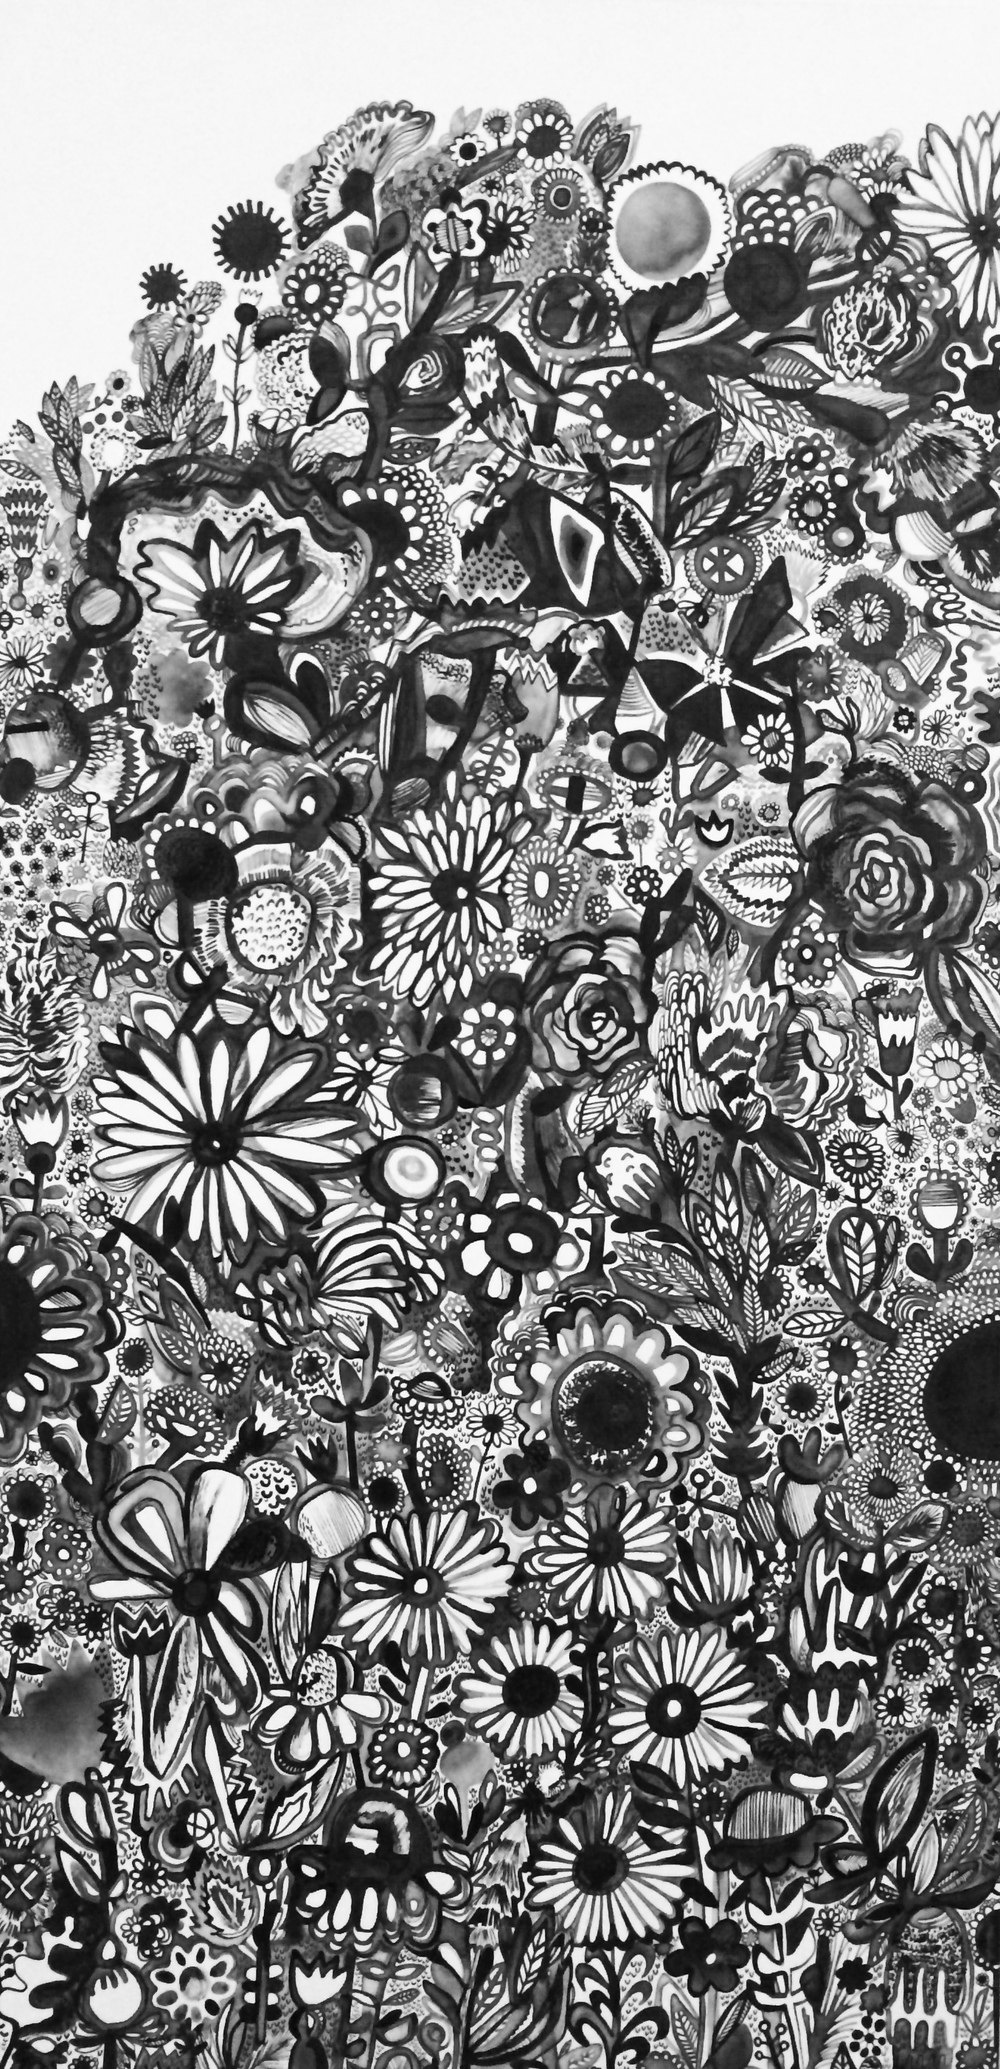 "Rebeca Raney Flower Power, 2014 Ink on panel 36"" x 18"" Retail Value: $1,000 Opening Bid: $350"